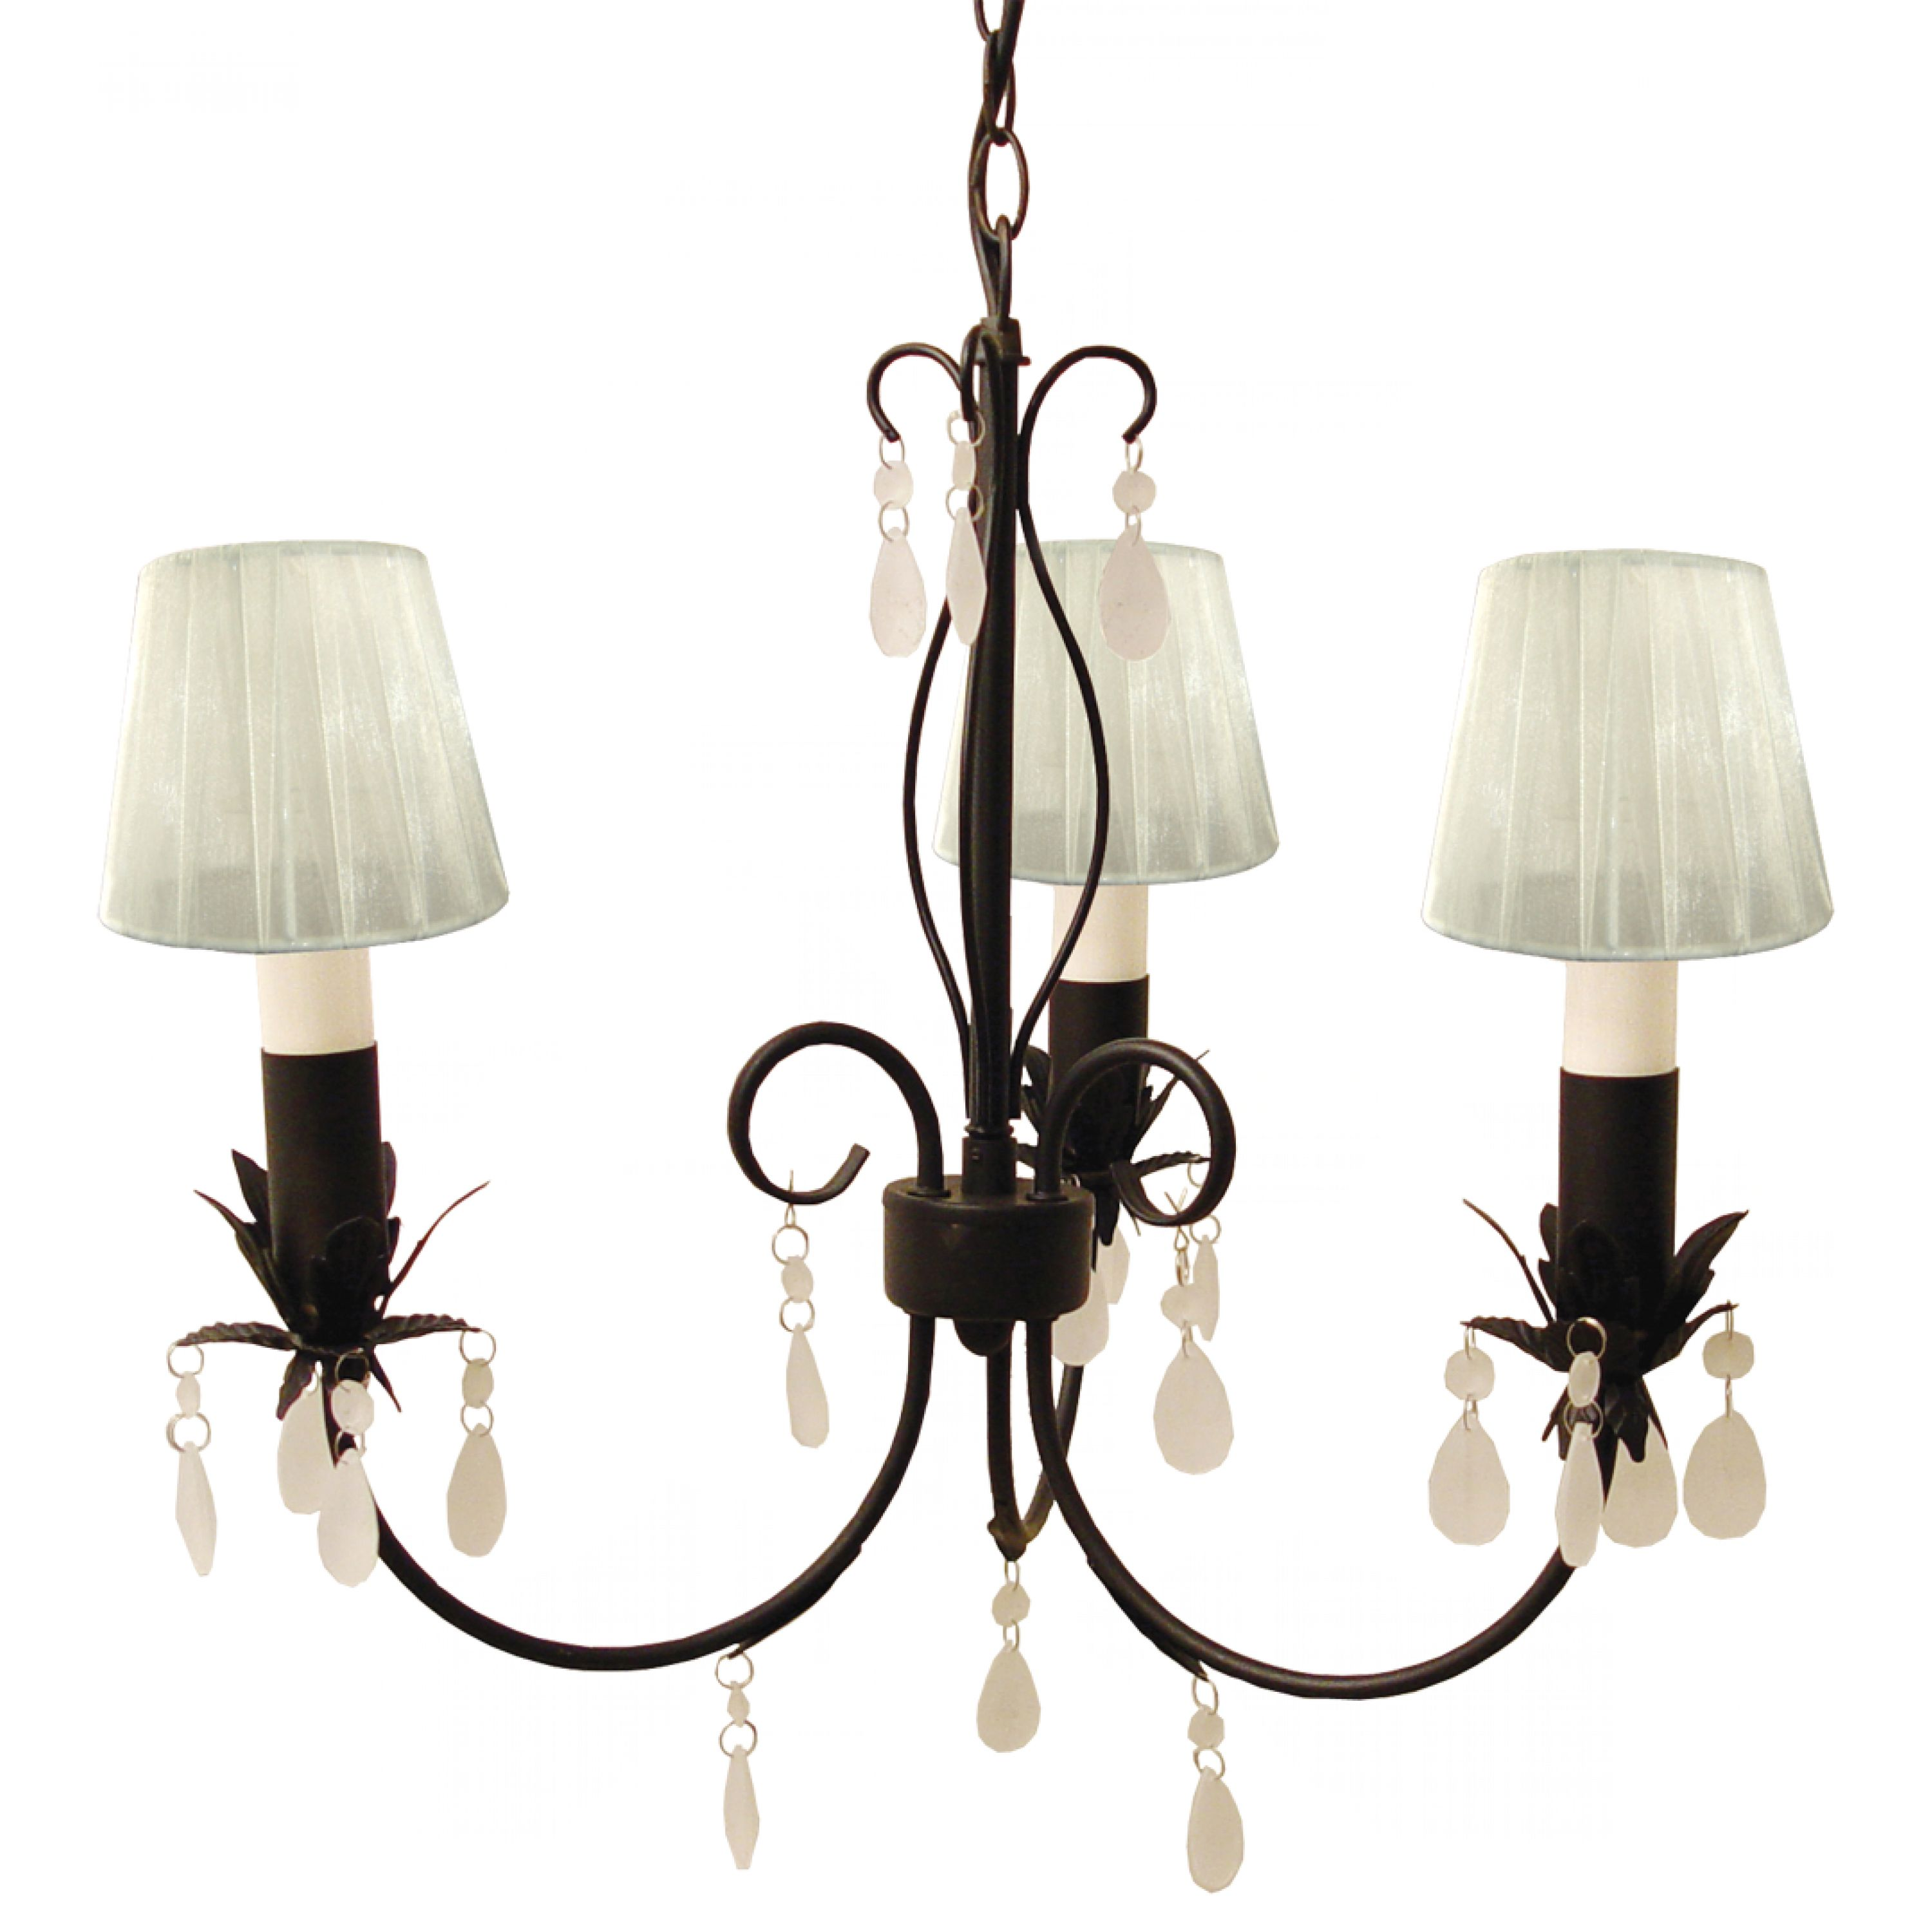 Gatsby Light (uplight, bronze)